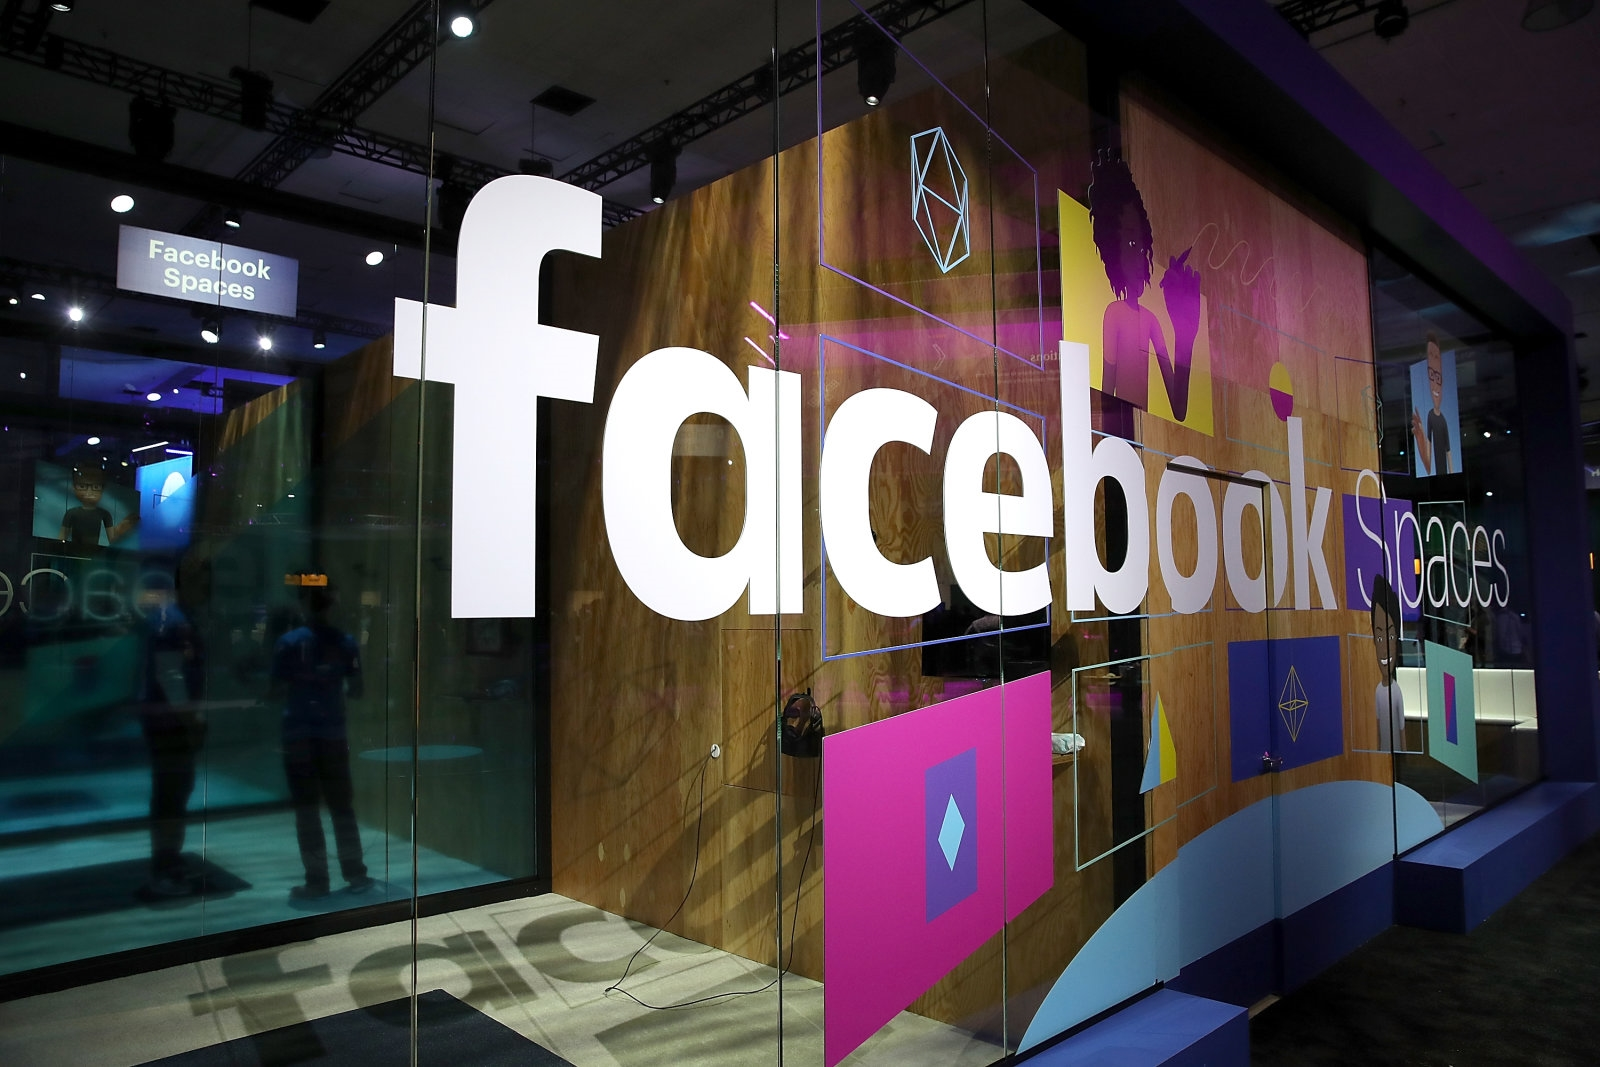 What to expect at Facebook's F8 conference this week | DeviceDaily.com